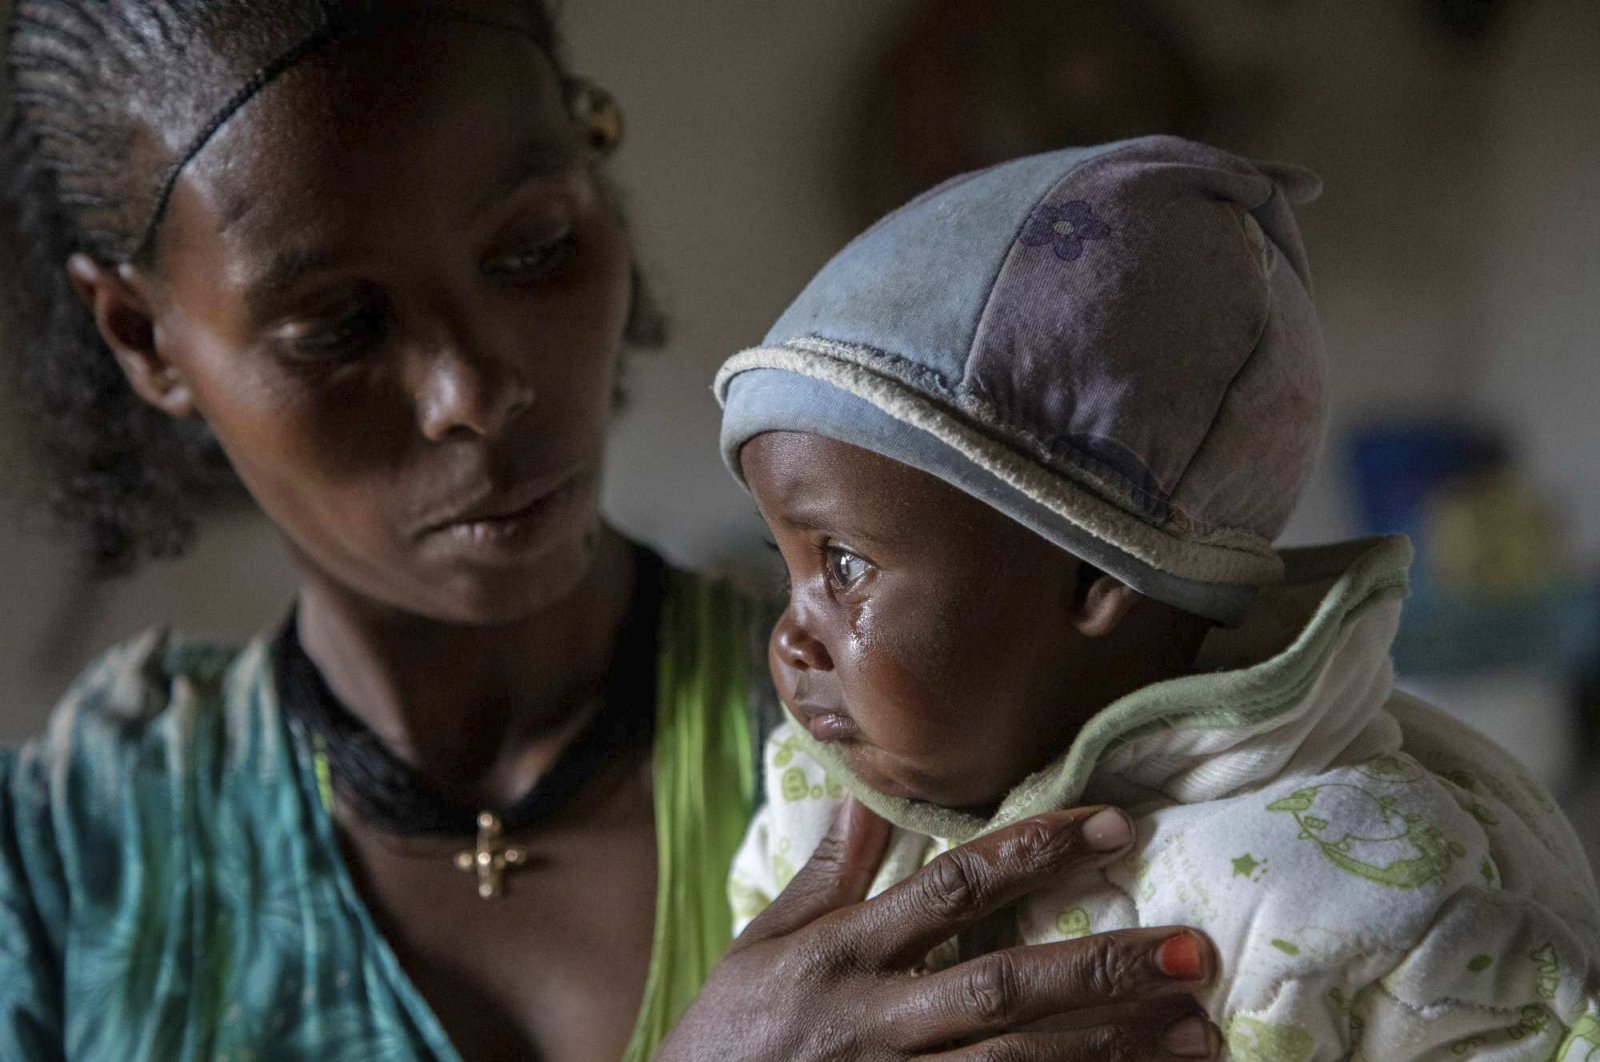 Ababa, 25, comforts her 6-month-old baby Wegahta, who was diagnosed as severely acutely malnourished, in Gijet, the Tigray region, northern Ethiopia, July 20, 2021. (AP Photo)